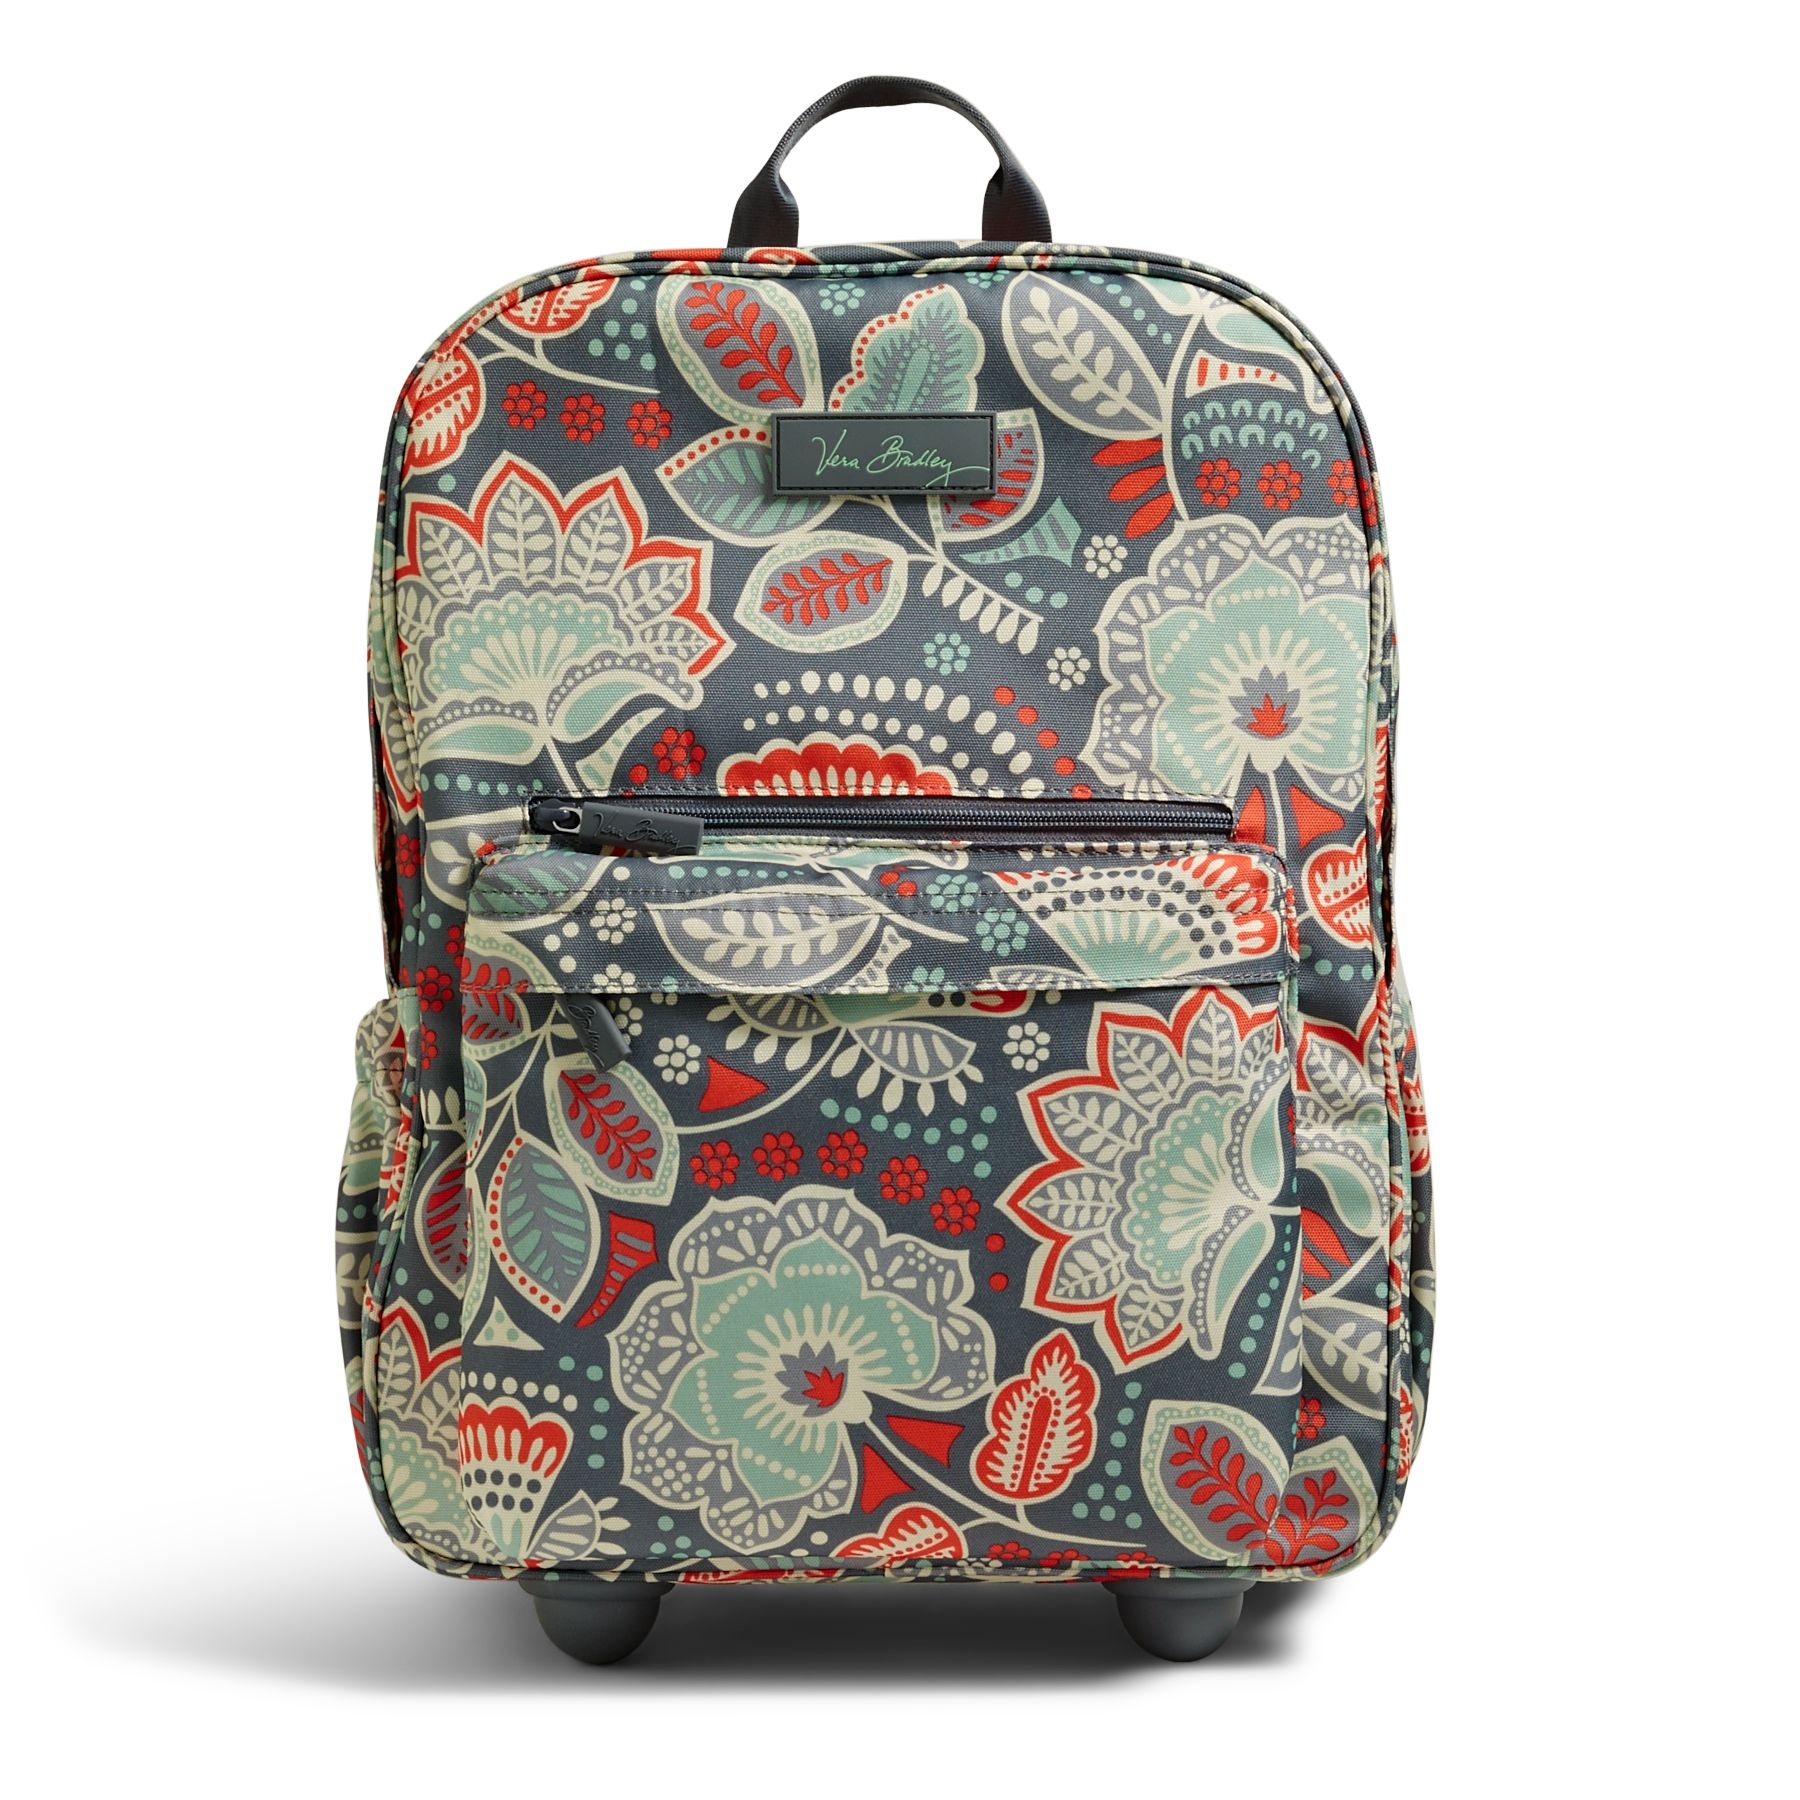 ... UPC 886003367353 product image for Vera Bradley Lighten Up Rolling  Backpack in Nomadic Floral   upcitemdb ... 7aa5318675